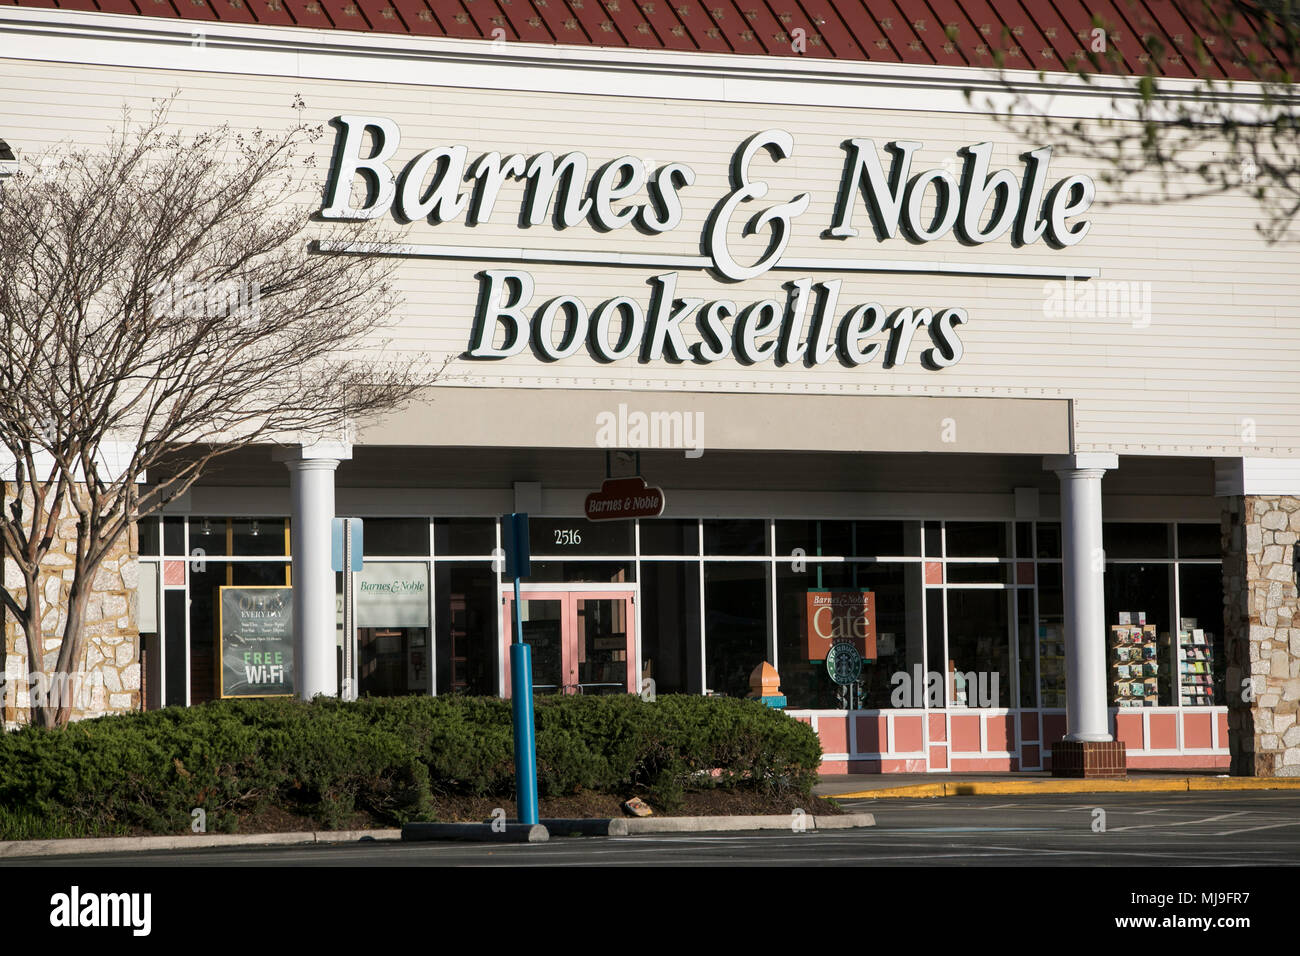 A logo sign outside of a Barnes & Noble Booksellers store in Annapolis, Maryland on April 29, 2018. - Stock Image